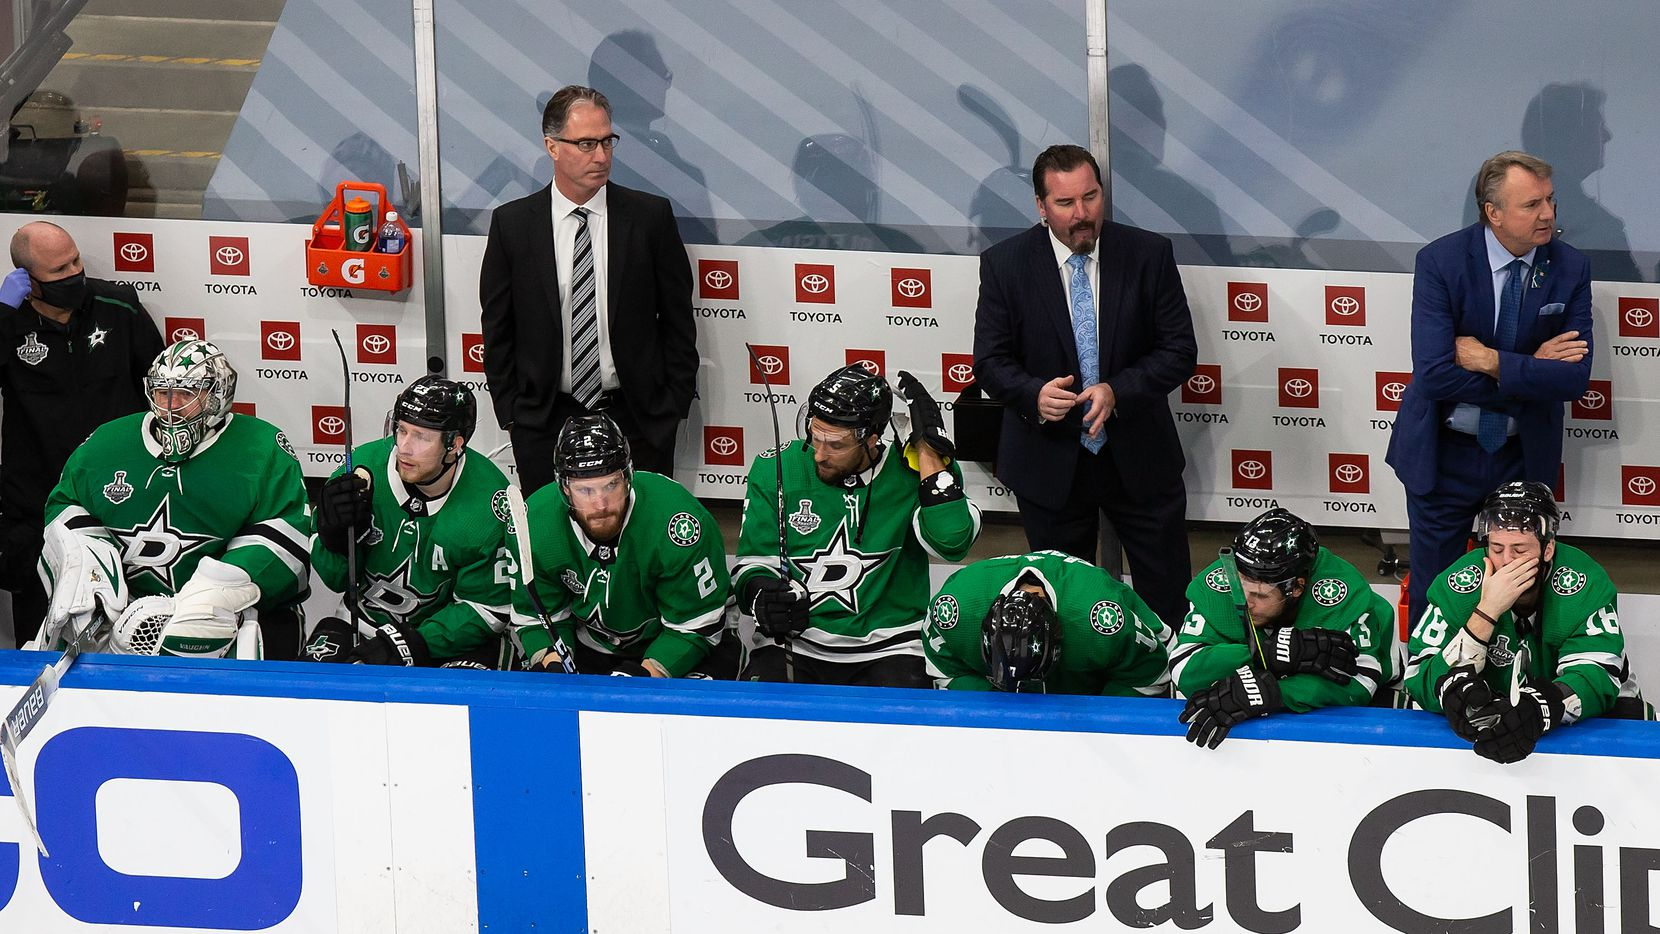 The Dallas Stars react to their loss against the Tampa Bay Lightning during Game Six of the Stanley Cup Final at Rogers Place in Edmonton, Alberta, Canada on Monday, September 28, 2020.